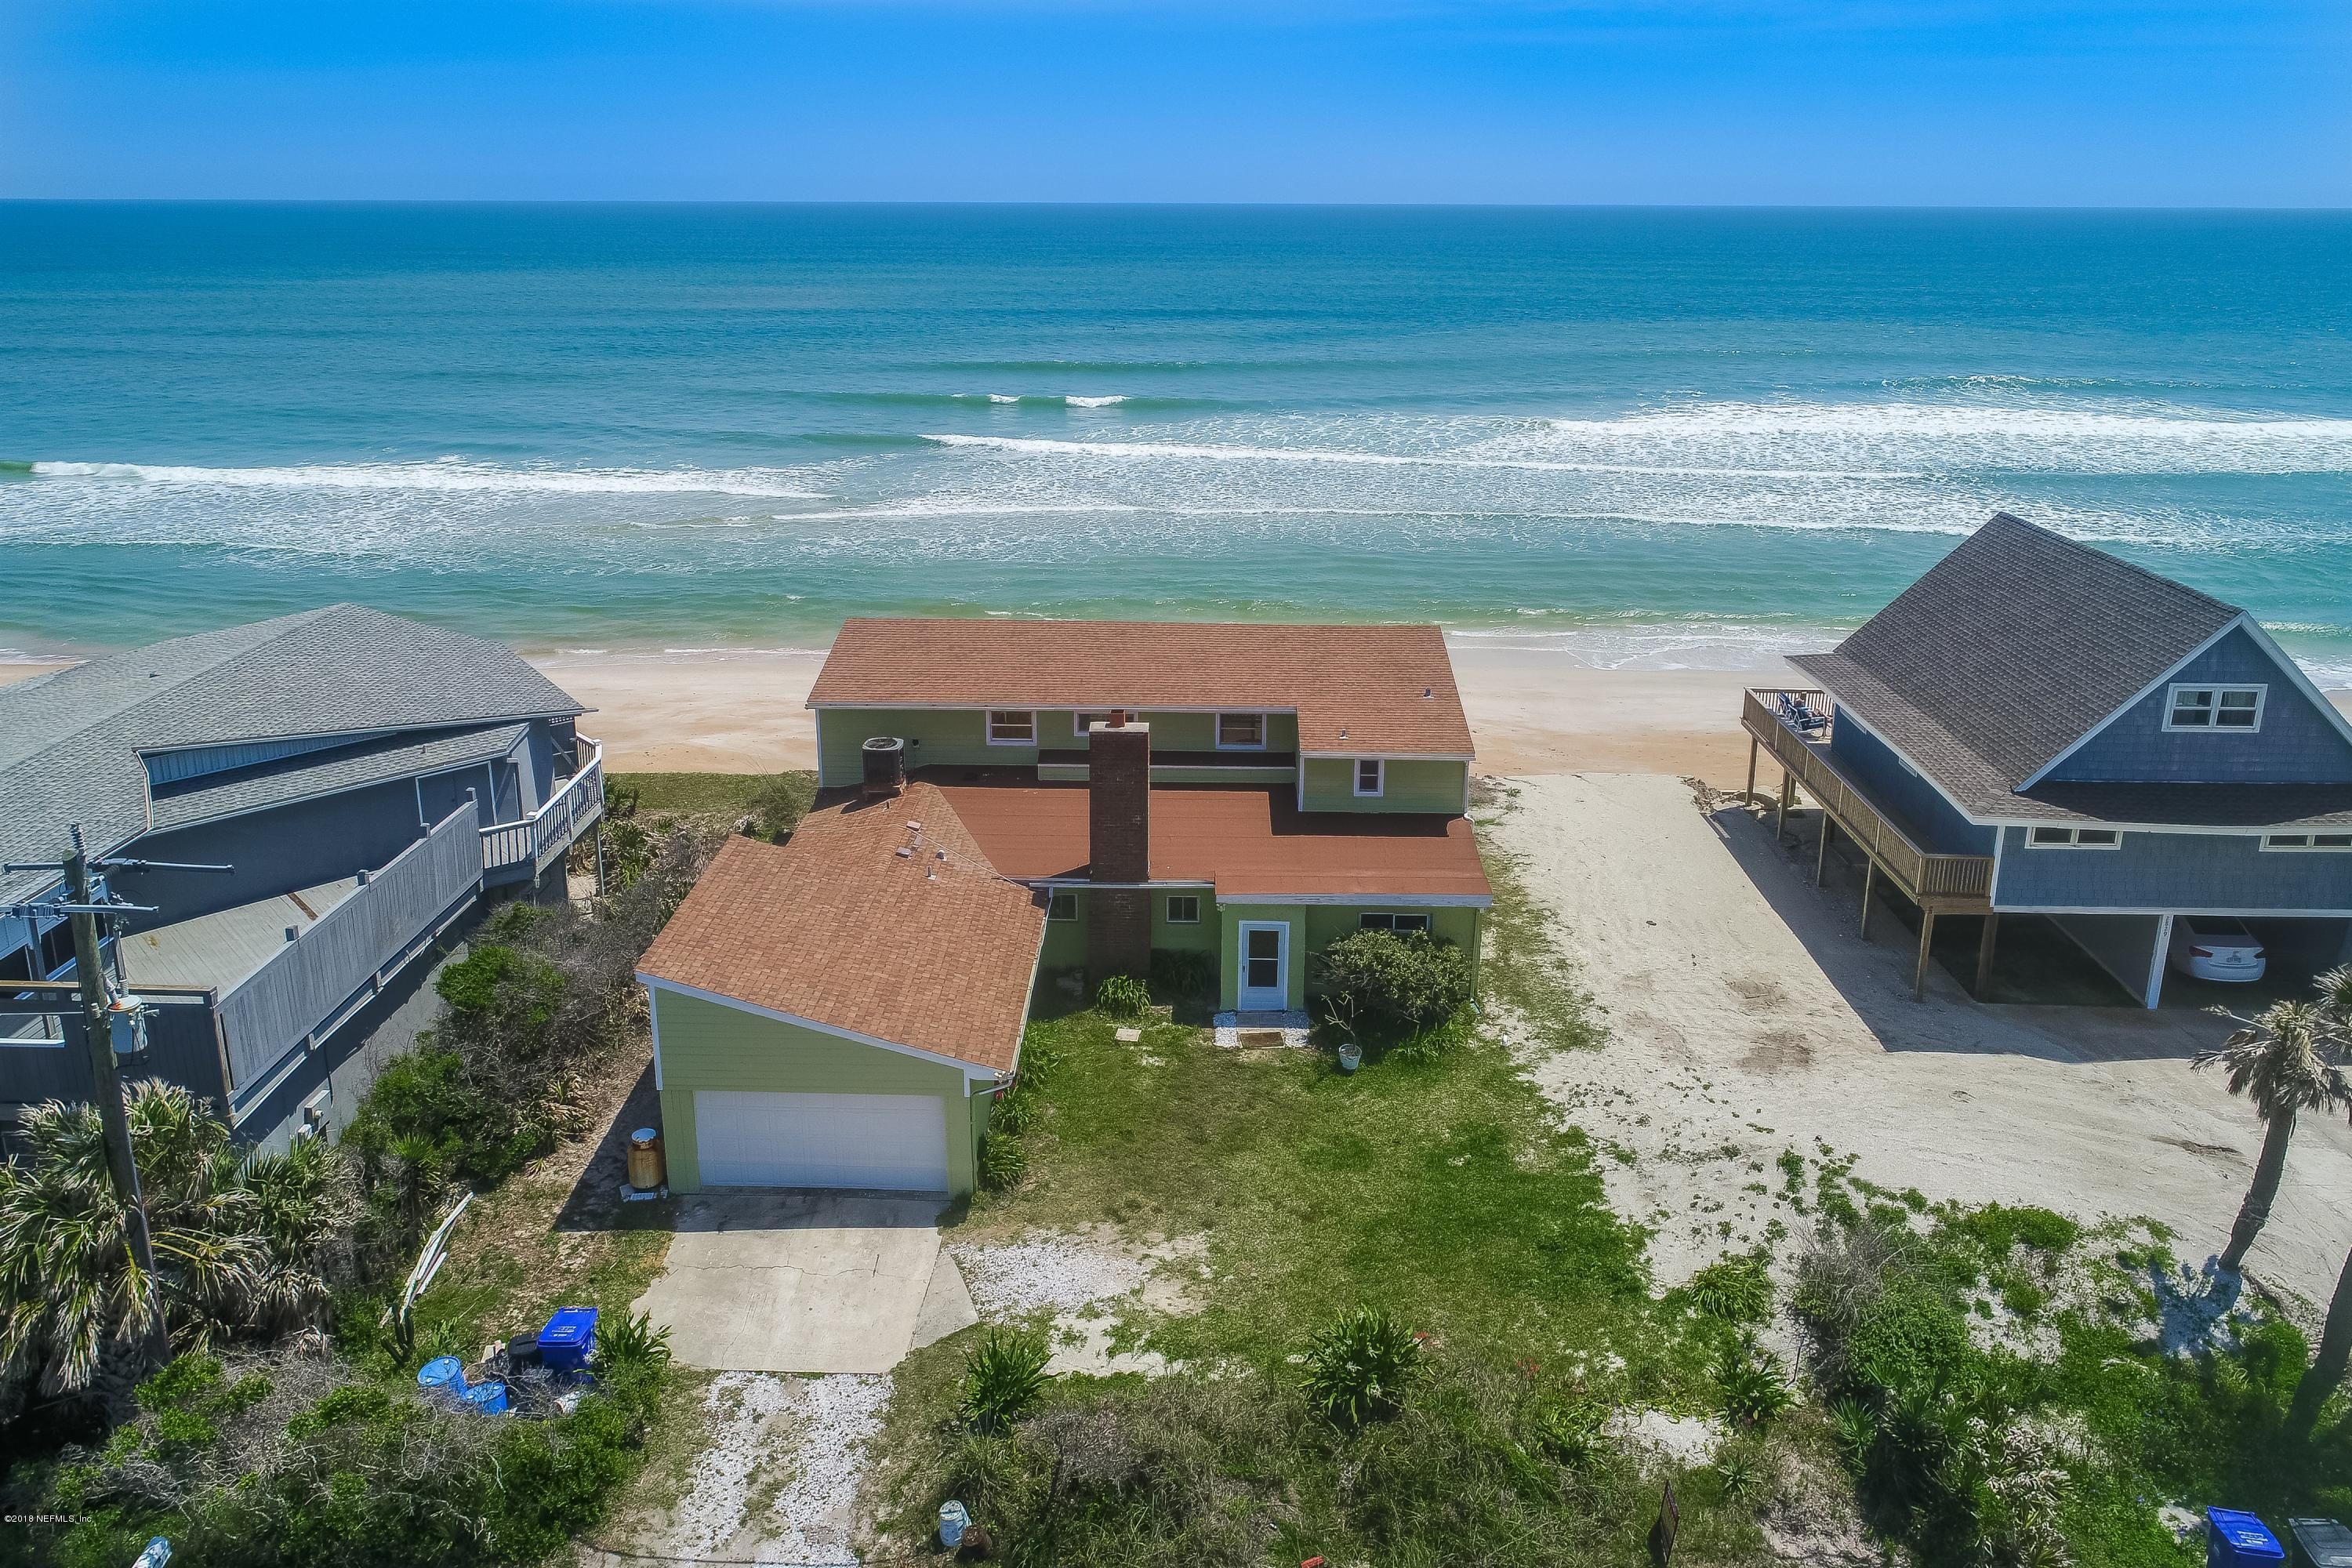 2827 PONTE VEDRA, PONTE VEDRA BEACH, FLORIDA 32082, 3 Bedrooms Bedrooms, ,2 BathroomsBathrooms,Residential - single family,For sale,PONTE VEDRA,933460